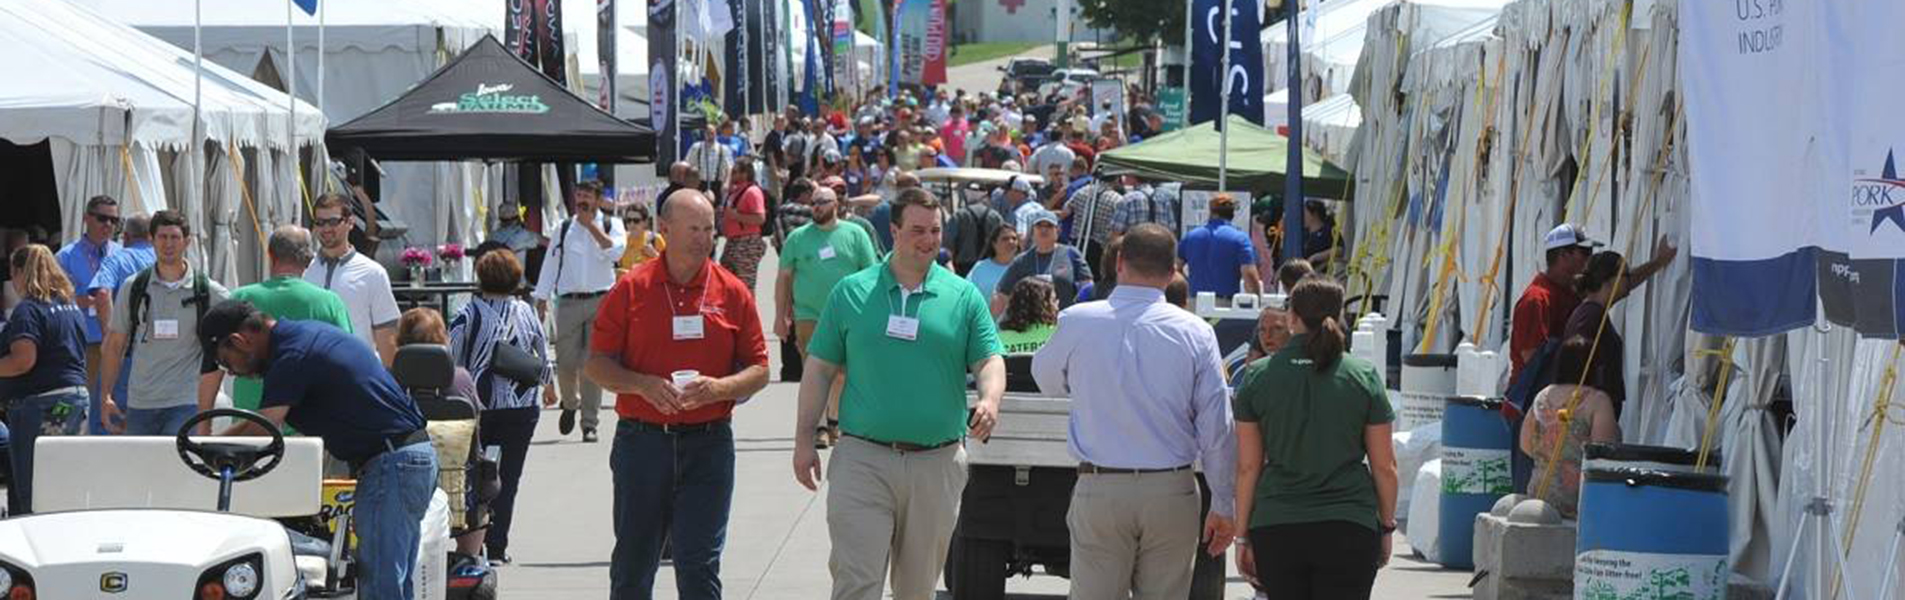 NPPC Cancels 2019 World Pork Expo as Precaution